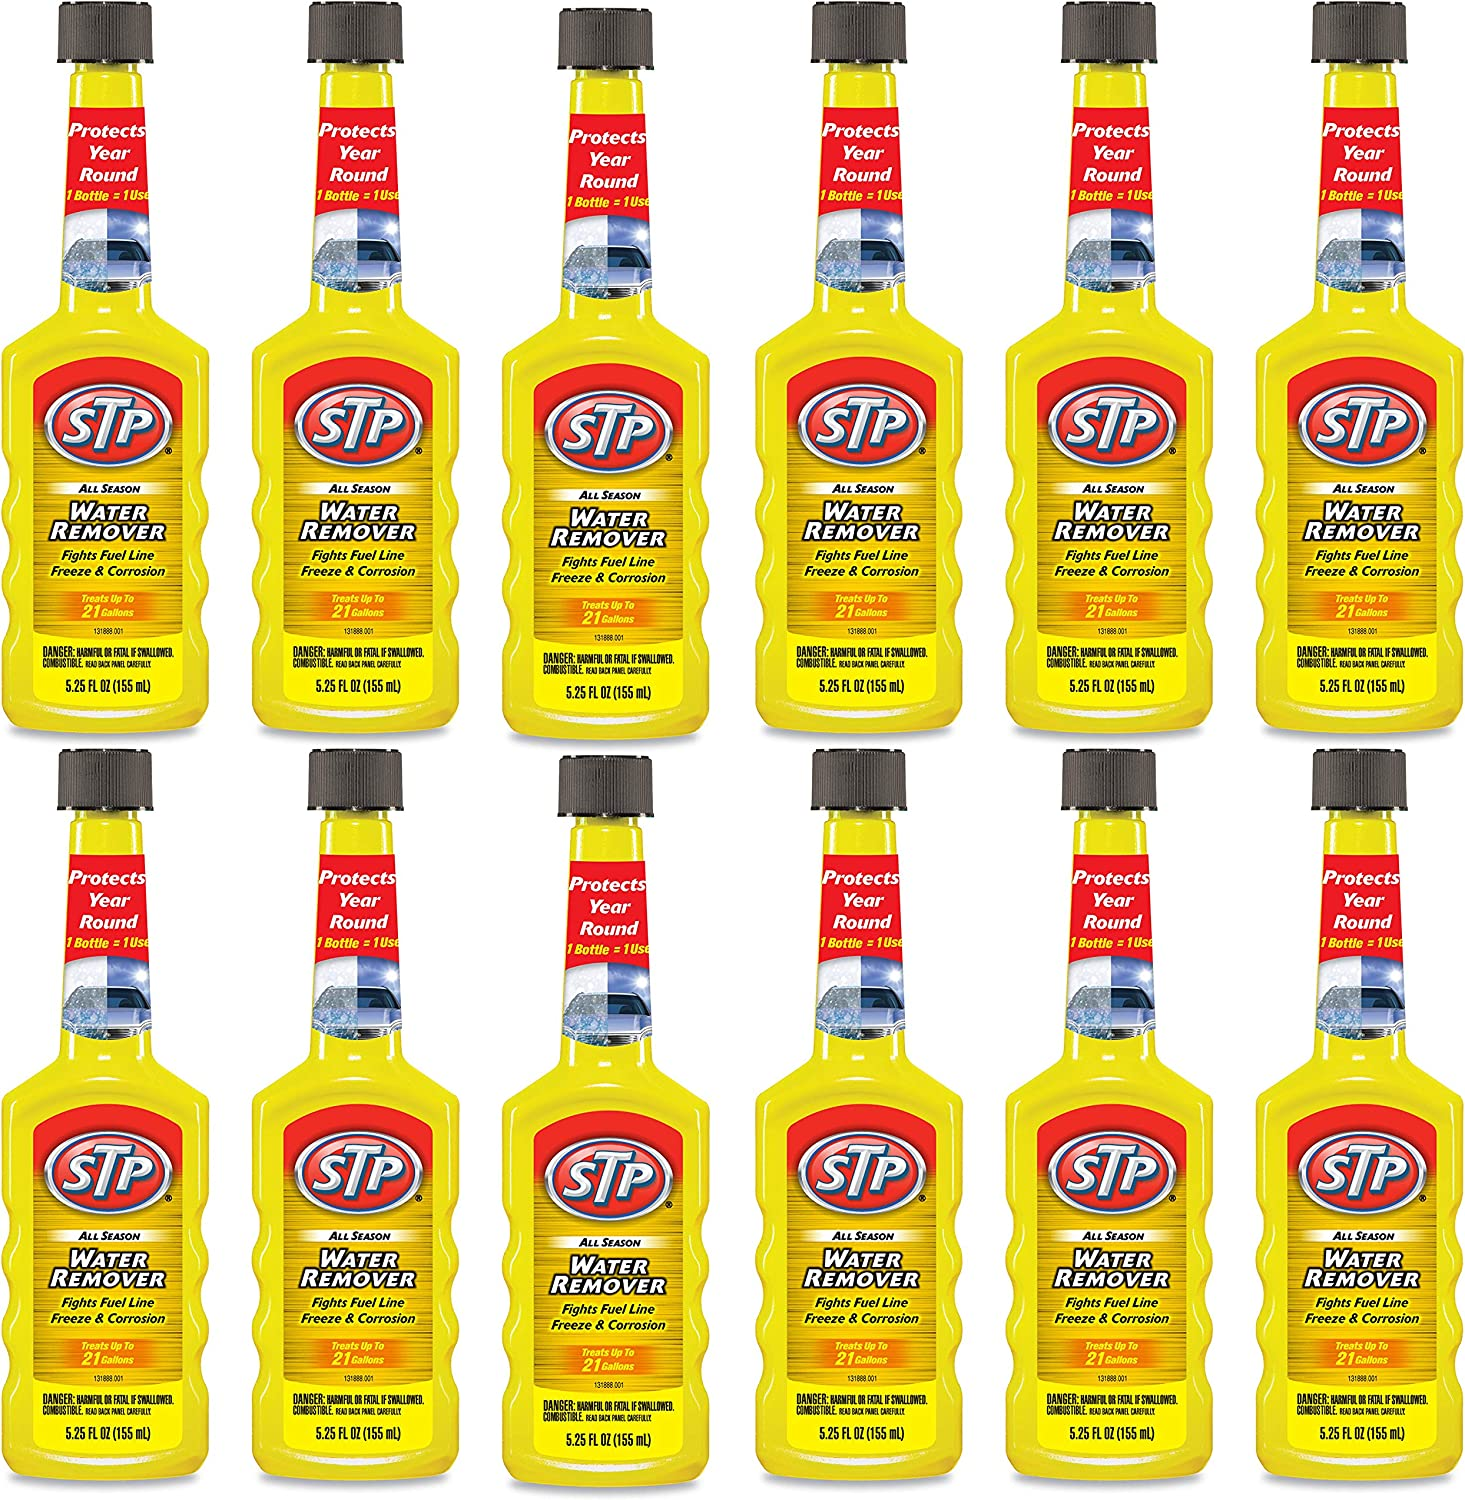 STP Water Remover All Season Cleaner